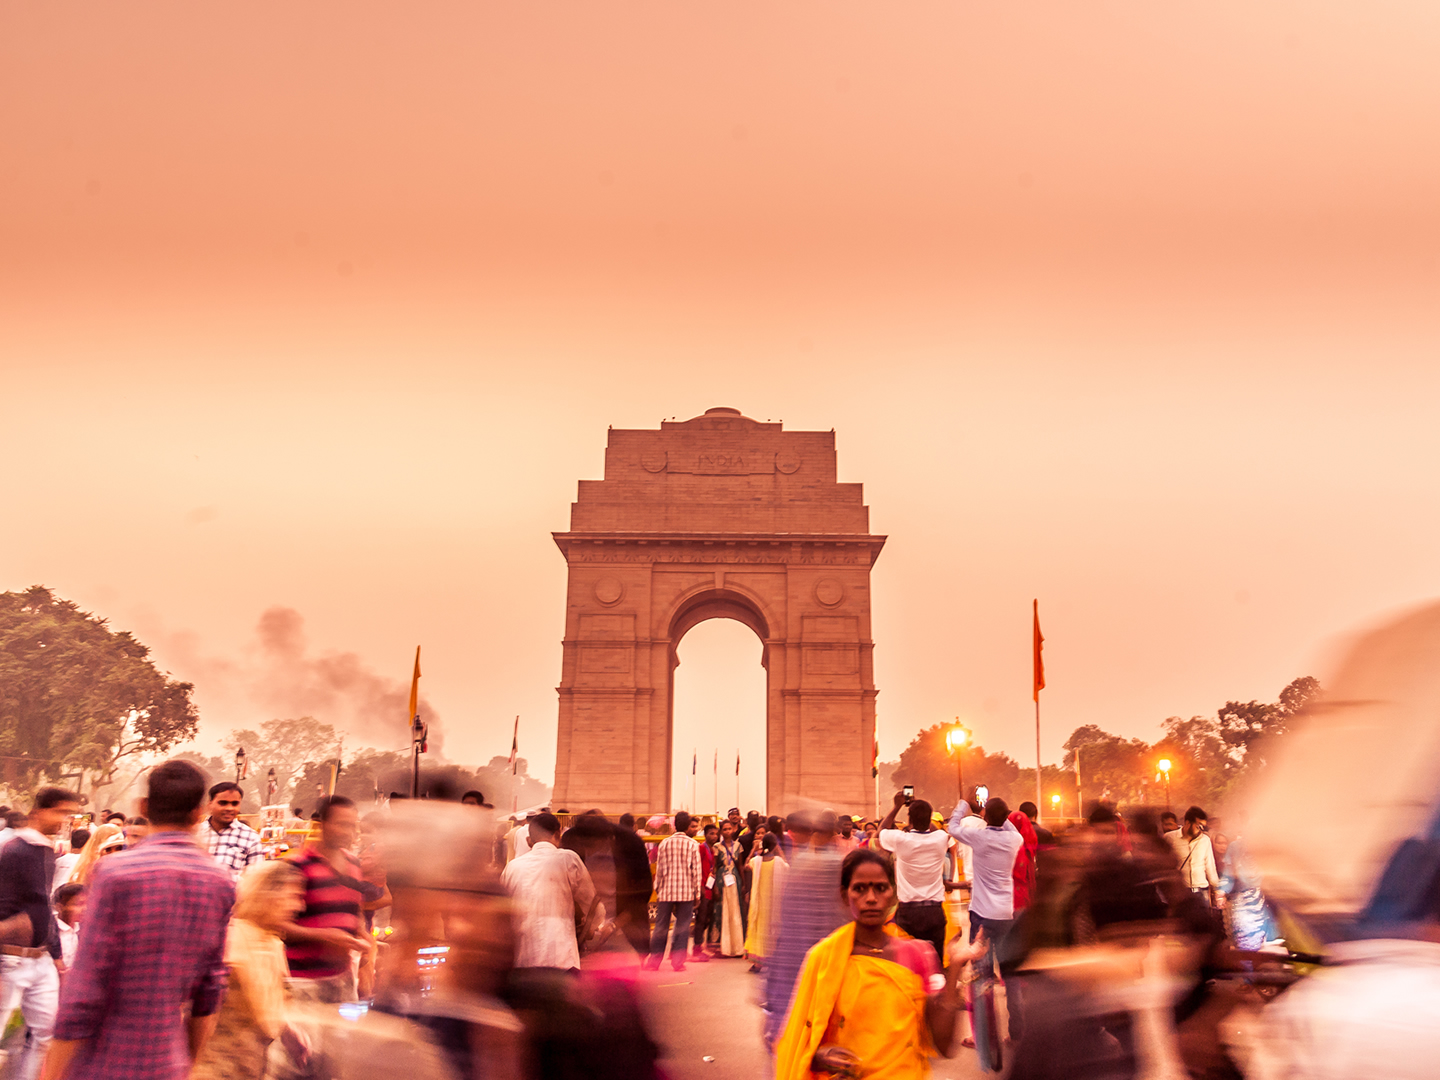 Crowds around the India Gate at sunset